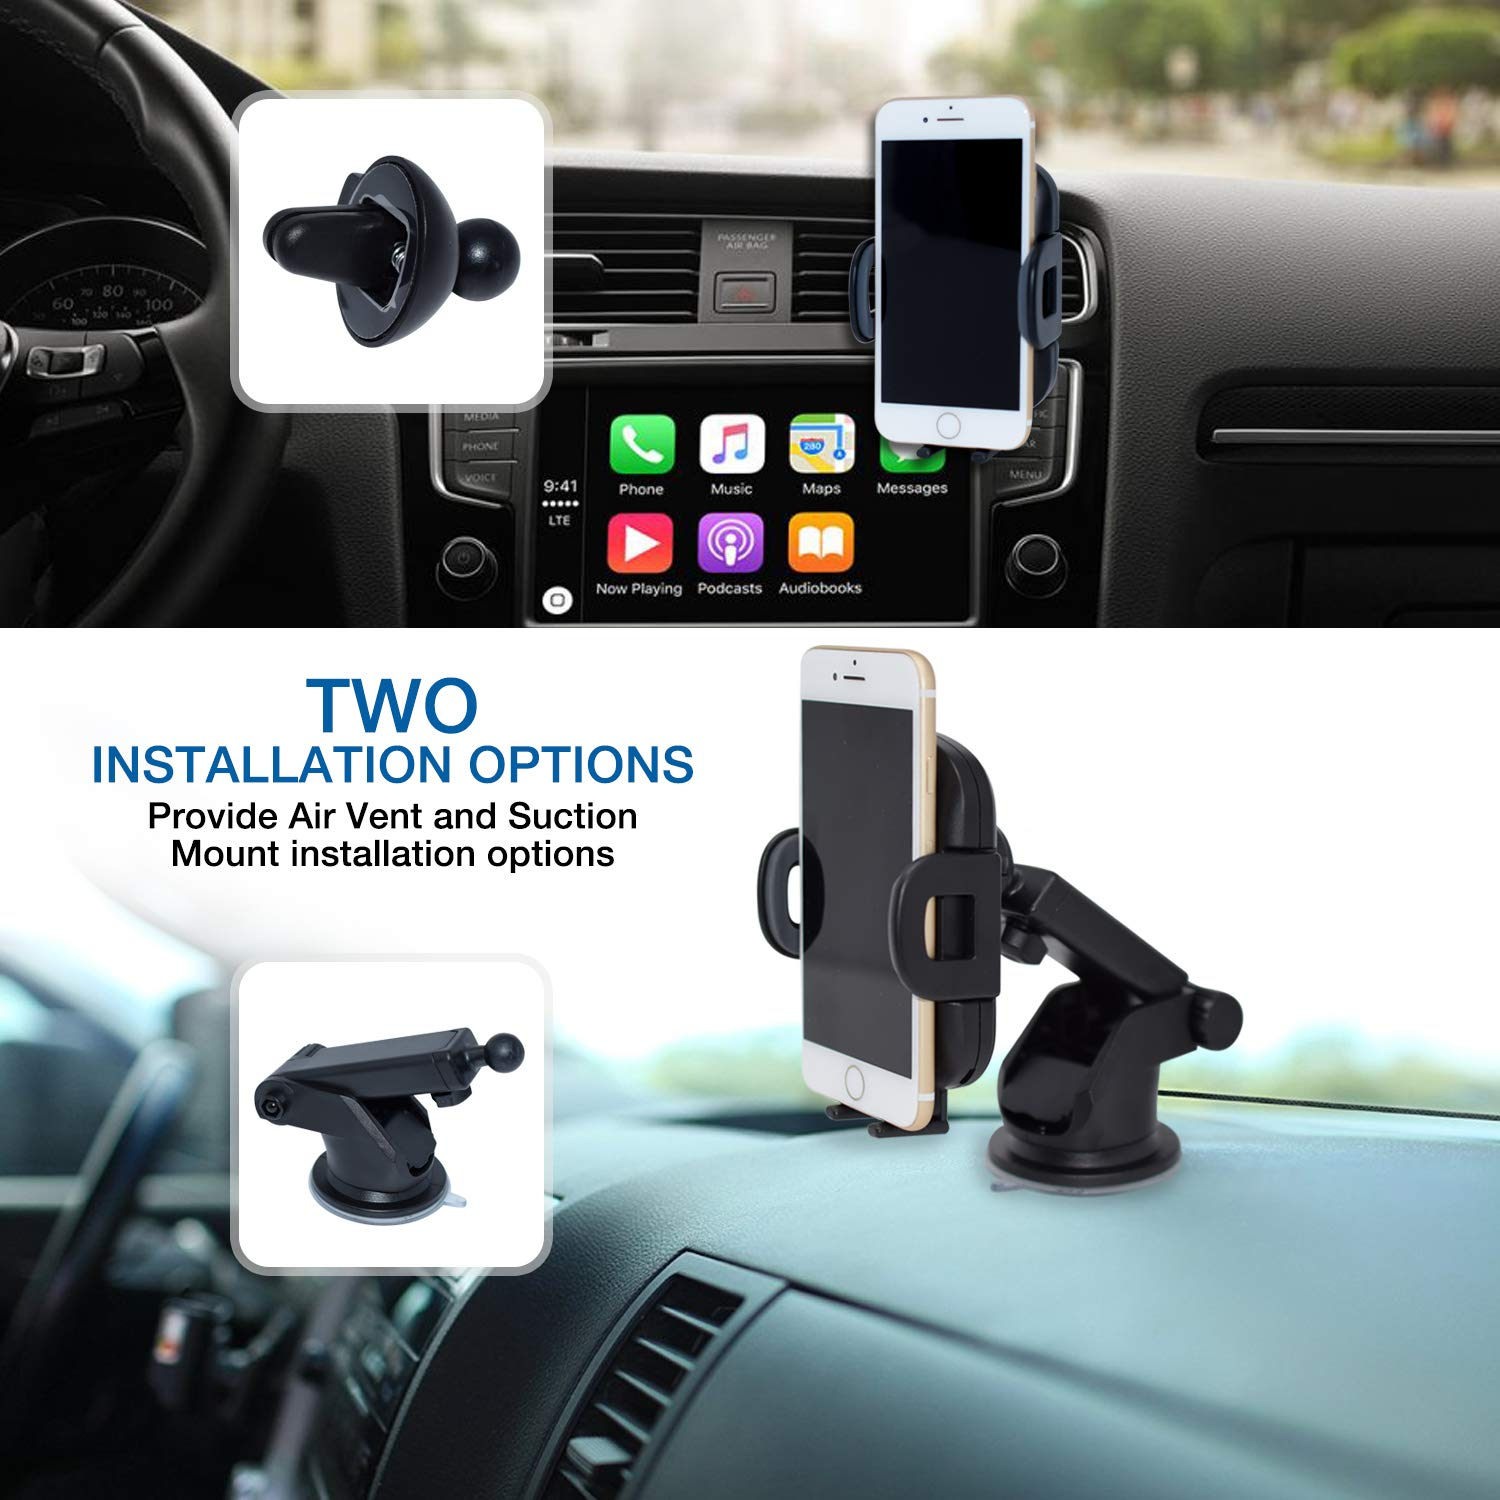 LTD PH-10S BonBuddy BiBi Automatic Fast Car Wireless Charger Easy One Touch Car Dashboard//Windshield//Air Vent Qi Charger Mount For iPhone X8 8 Plus Samsung Galaxy S8 S8 Plus Note 8 DCT ENTERPRISE CO